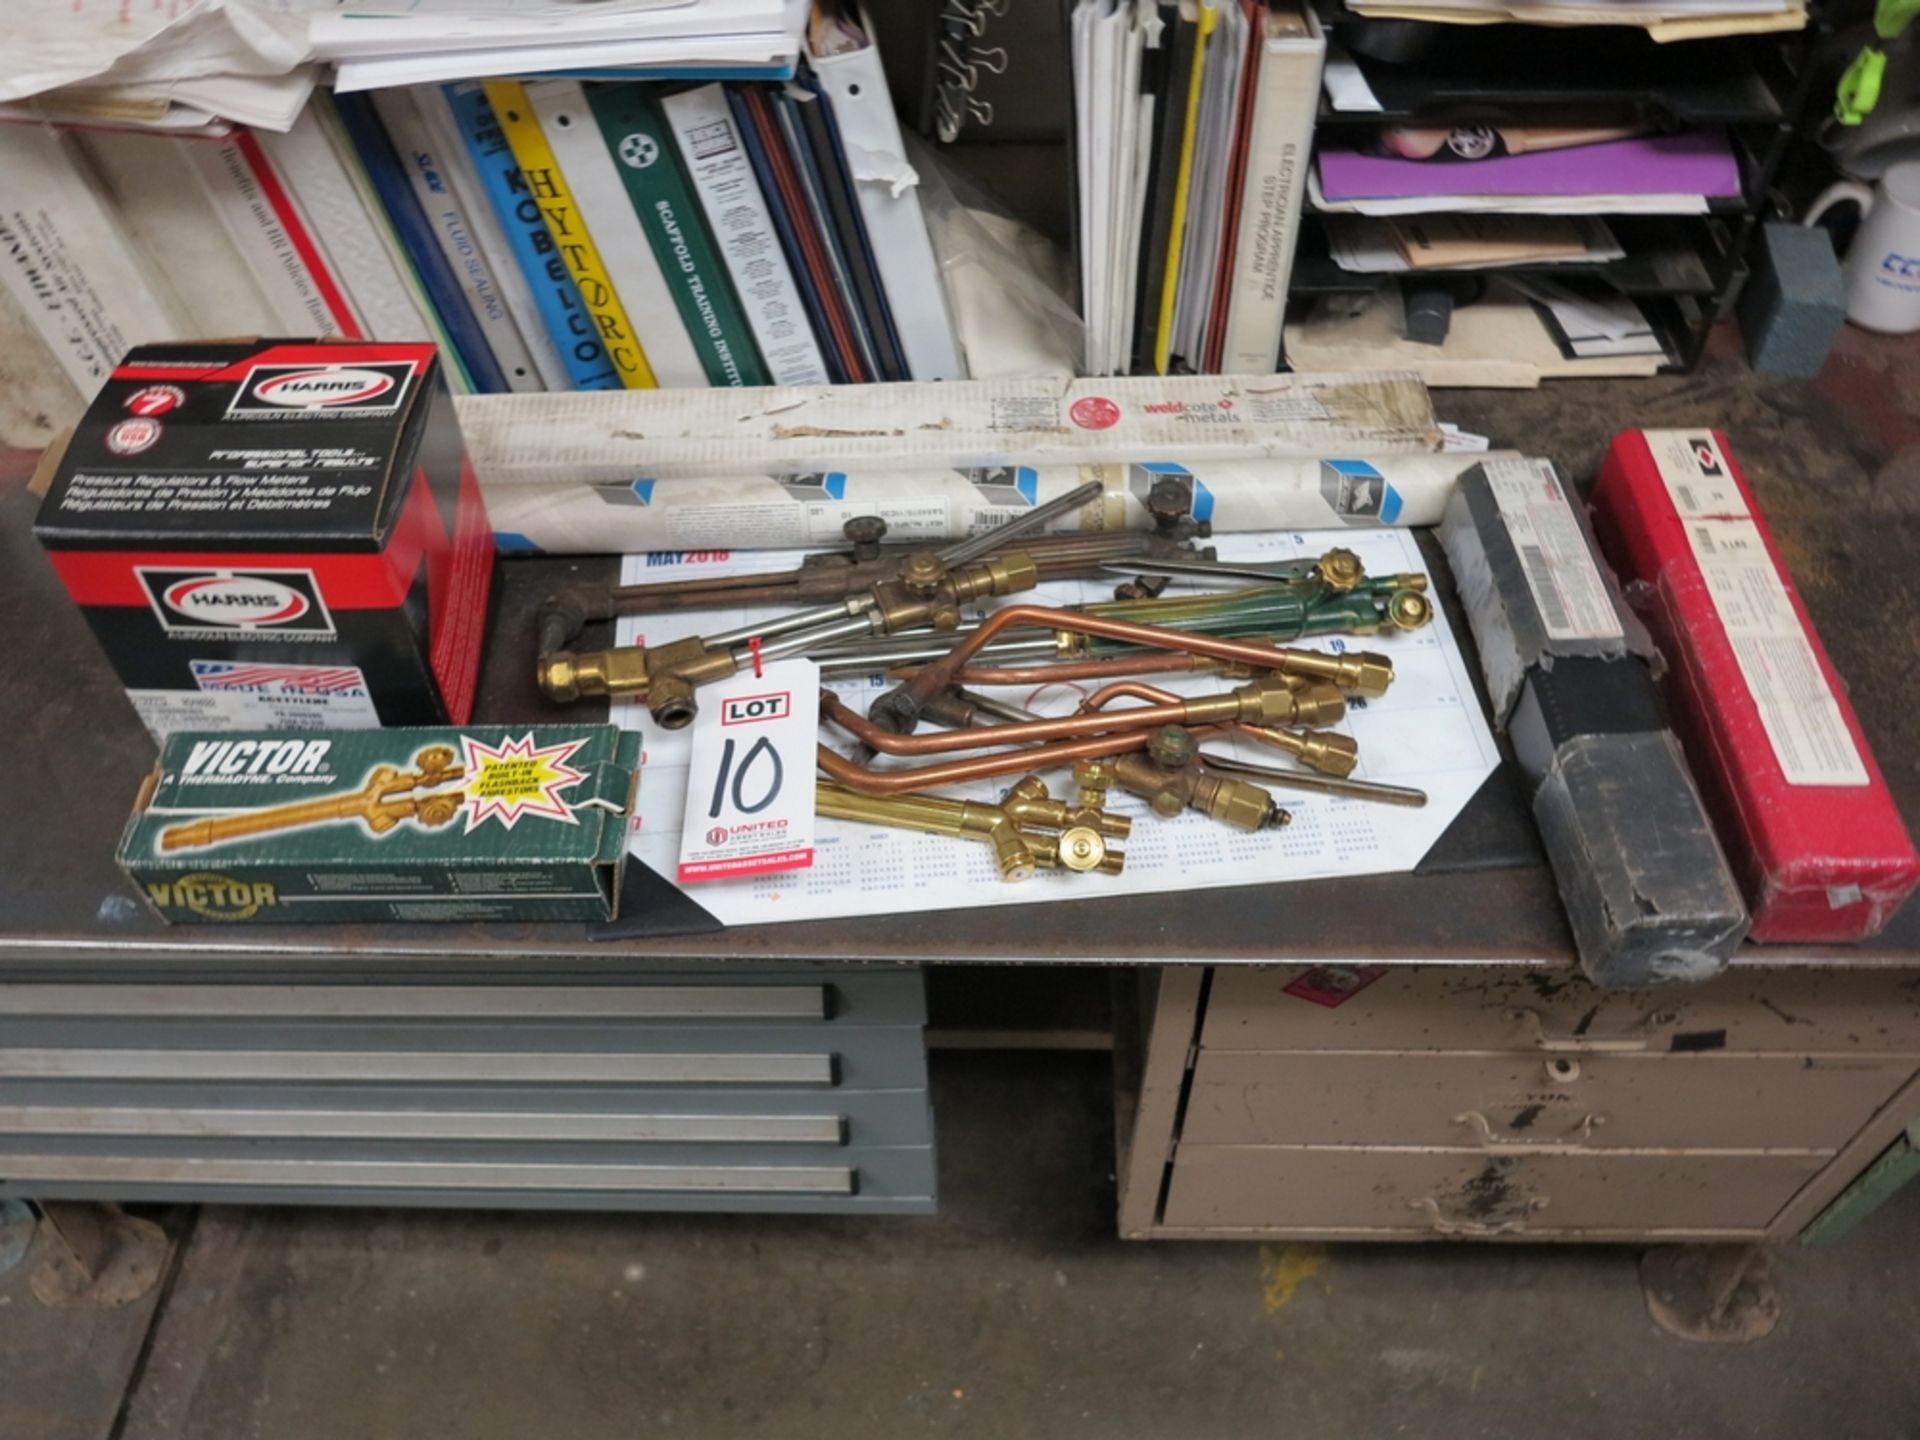 Lot 10 - LOT - CUTTING TORCHES AND HANDLES, ACETYLENE REGULATOR, MISC WELDING WIRE